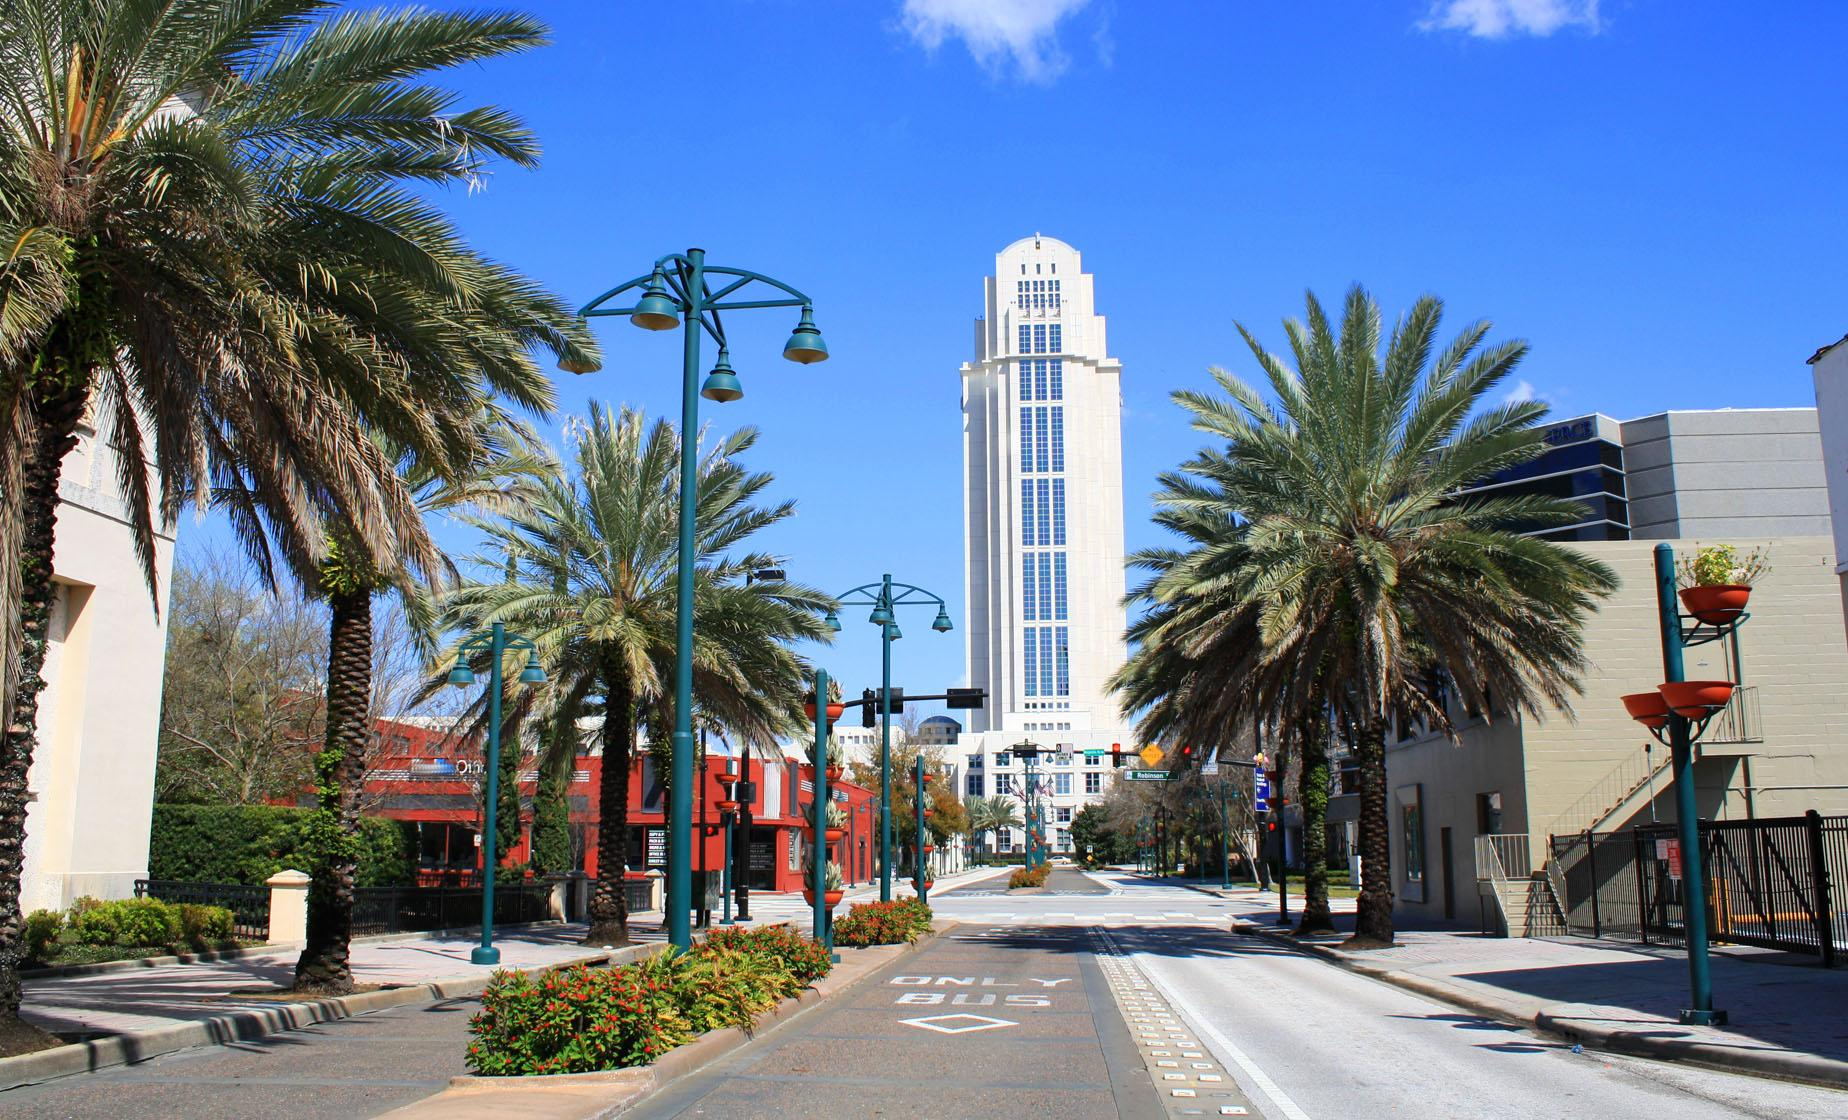 Scenic Orlando City Tour in Florida (Rollins College, Park Avenue, Walt Disney Amphitheatre)